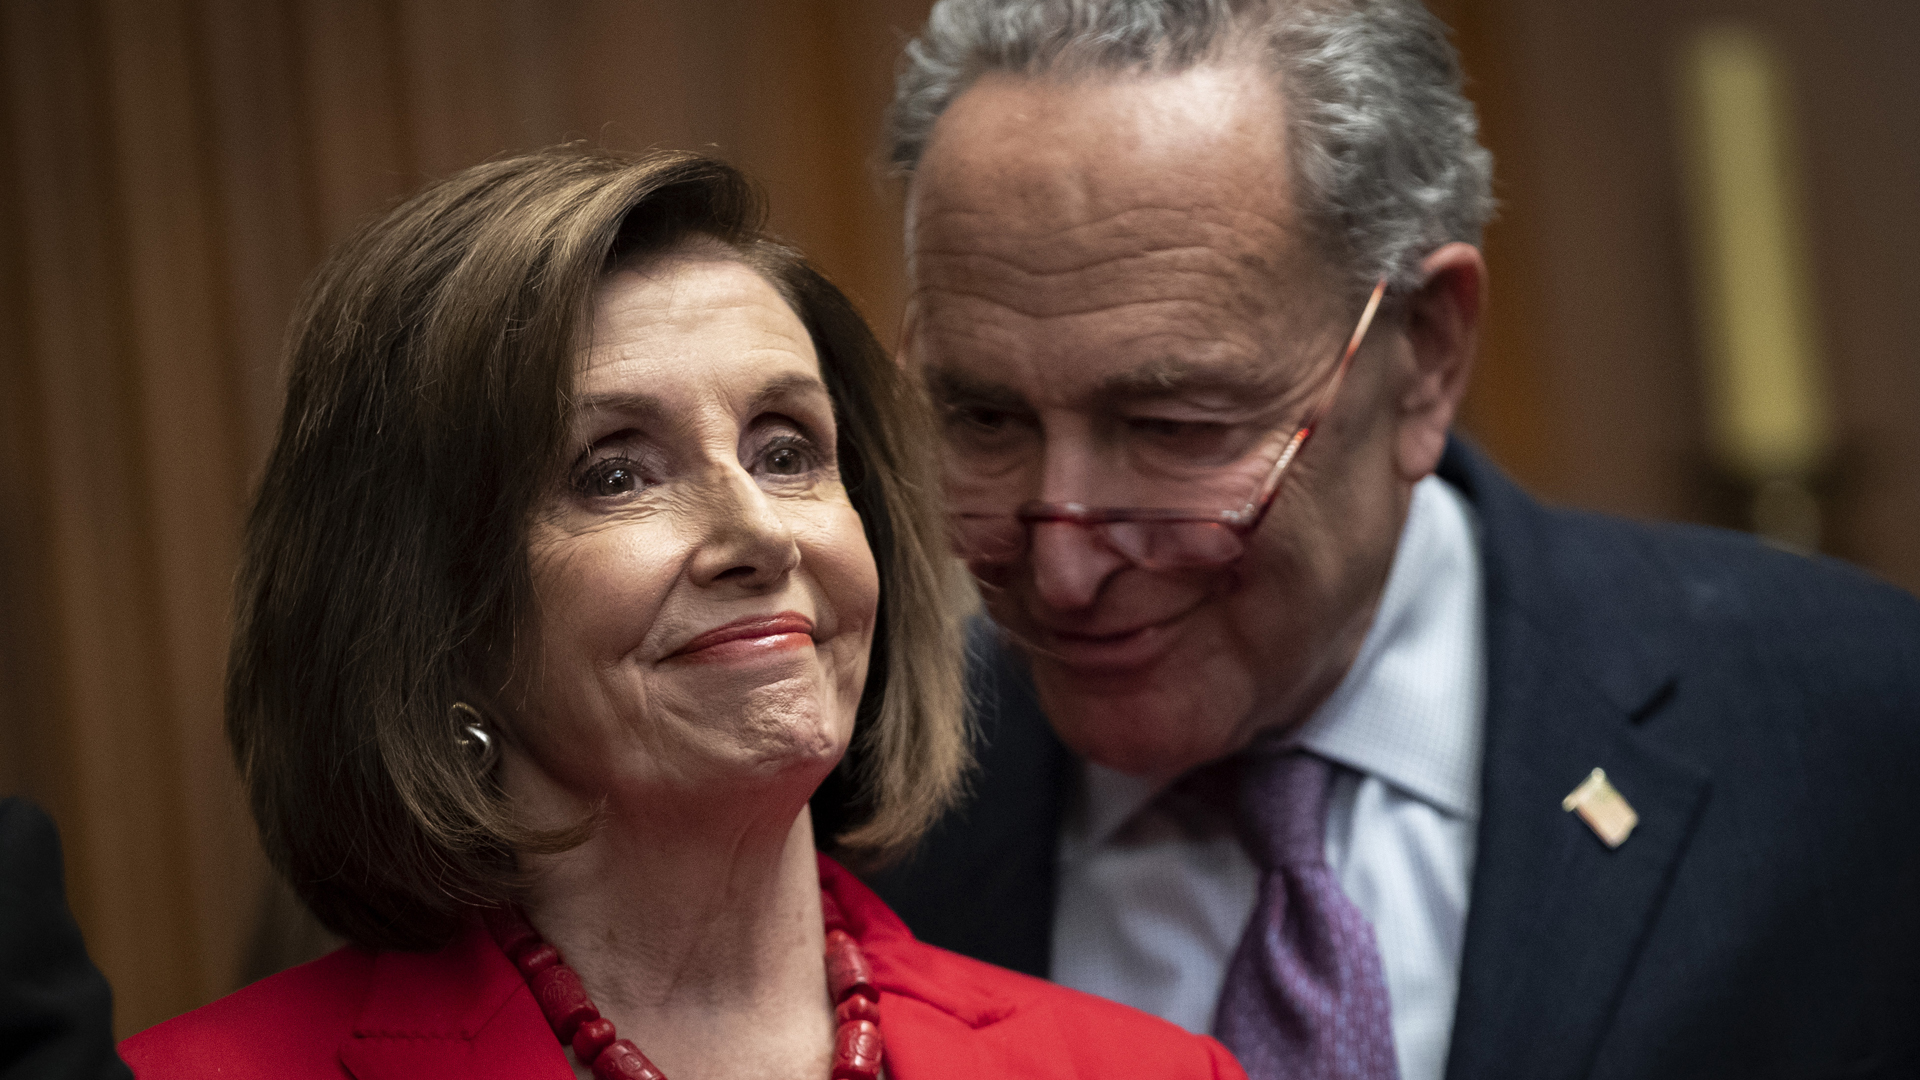 U.S. House Speaker Nancy Pelosi and Senate Minority Leader Chuck Schumer speak at a news conference at the U.S. Capitol on Nov. 12, 2019, in Washington, DC.(Credit: Drew Angerer/Getty Images)